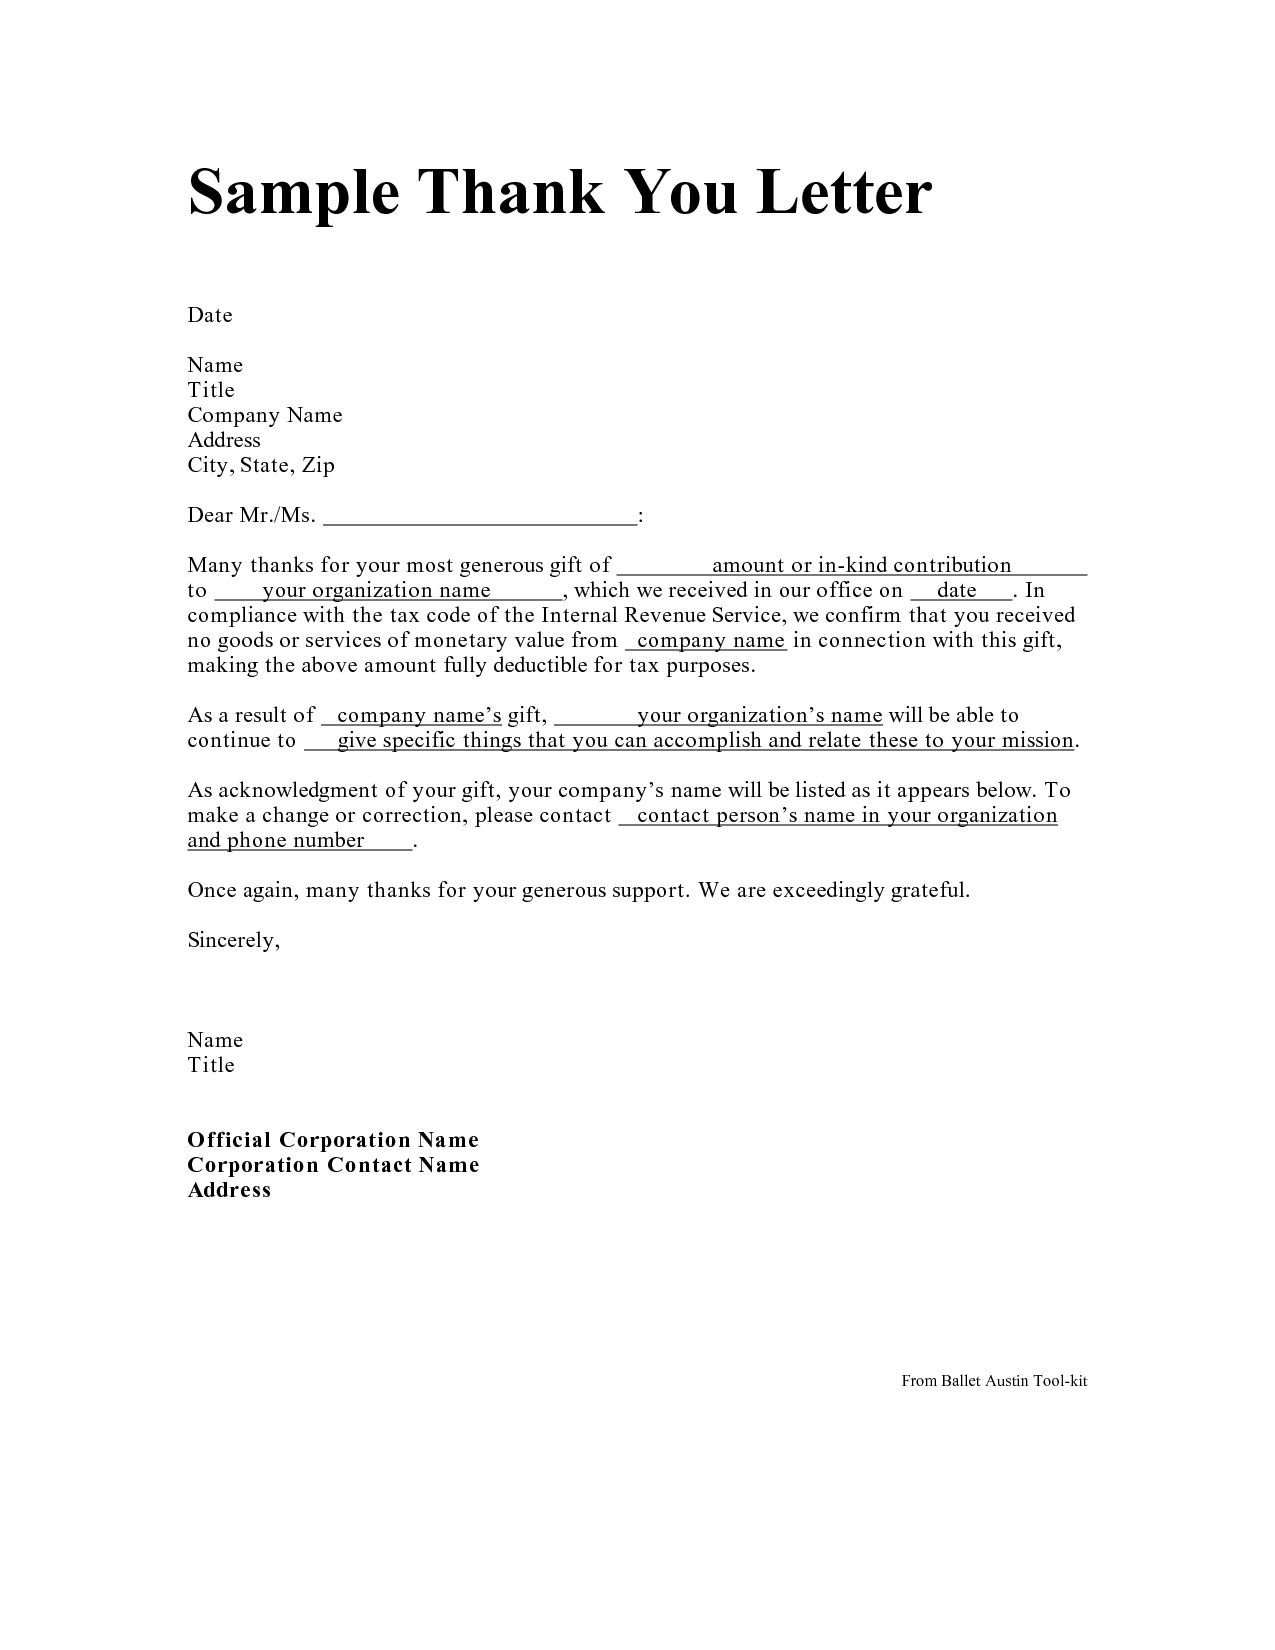 Create Letter Template - Personal Thank You Letter Personal Thank You Letter Samples